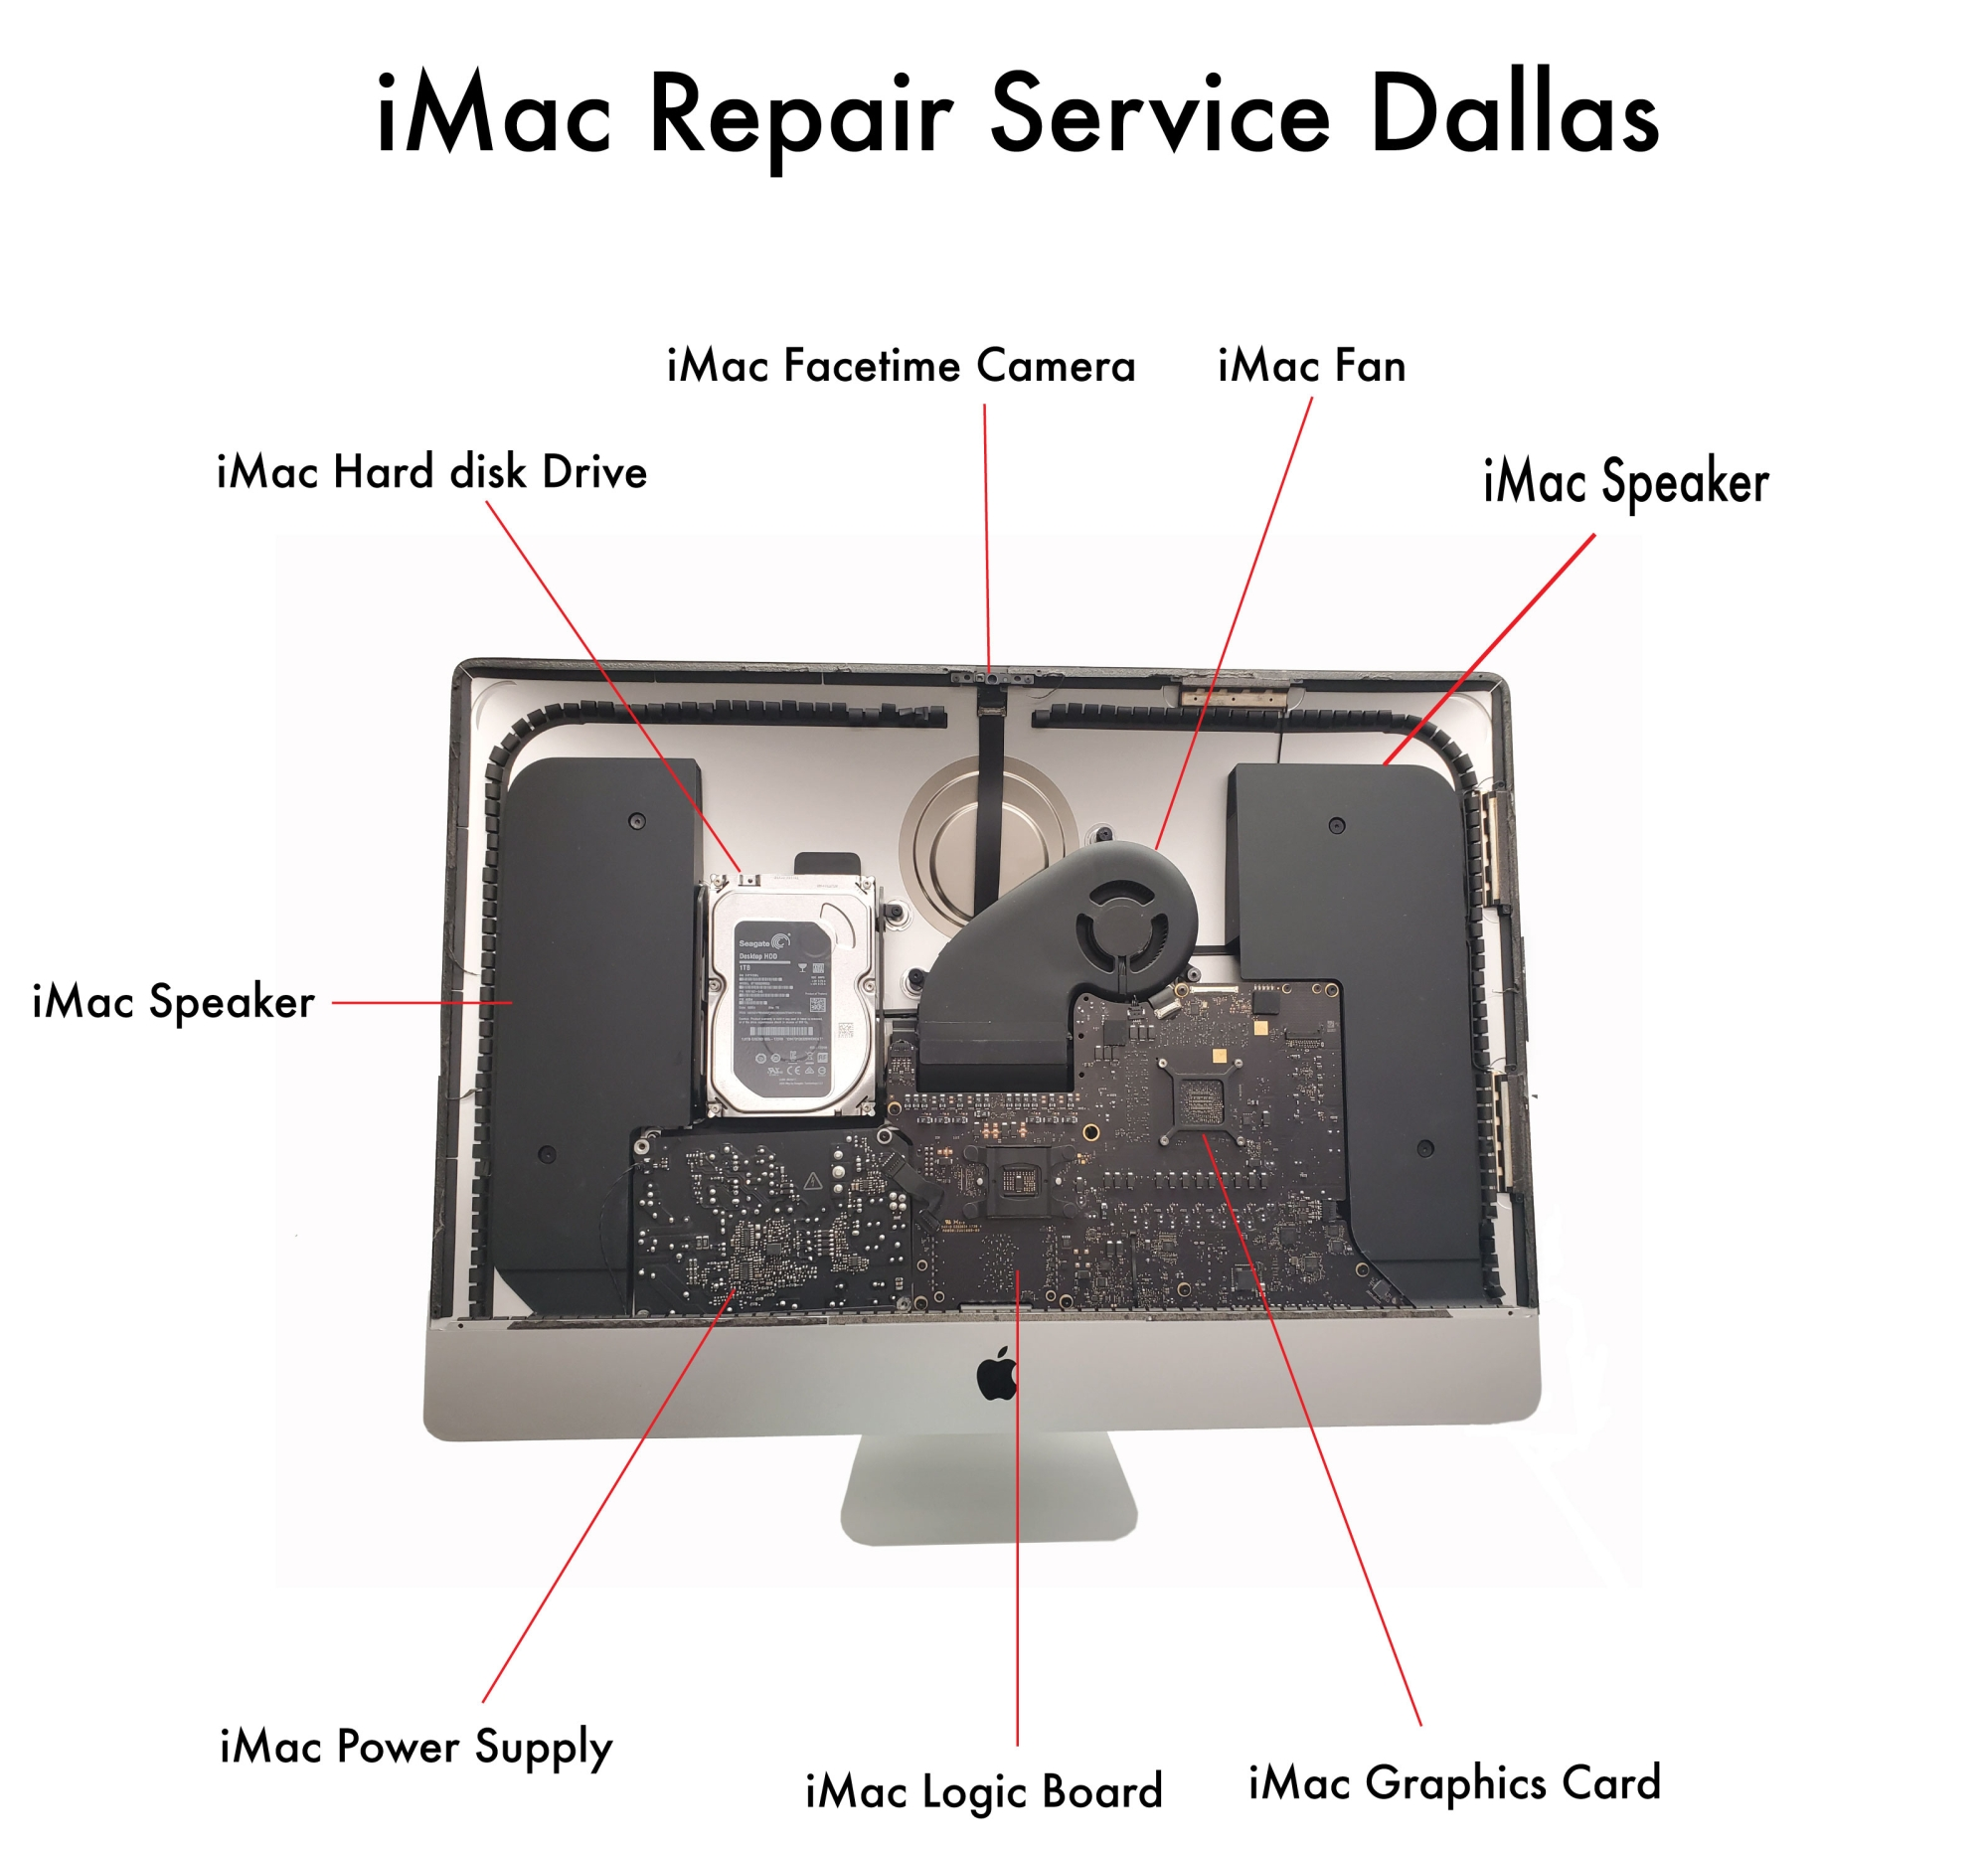 iMac repair service Dallas